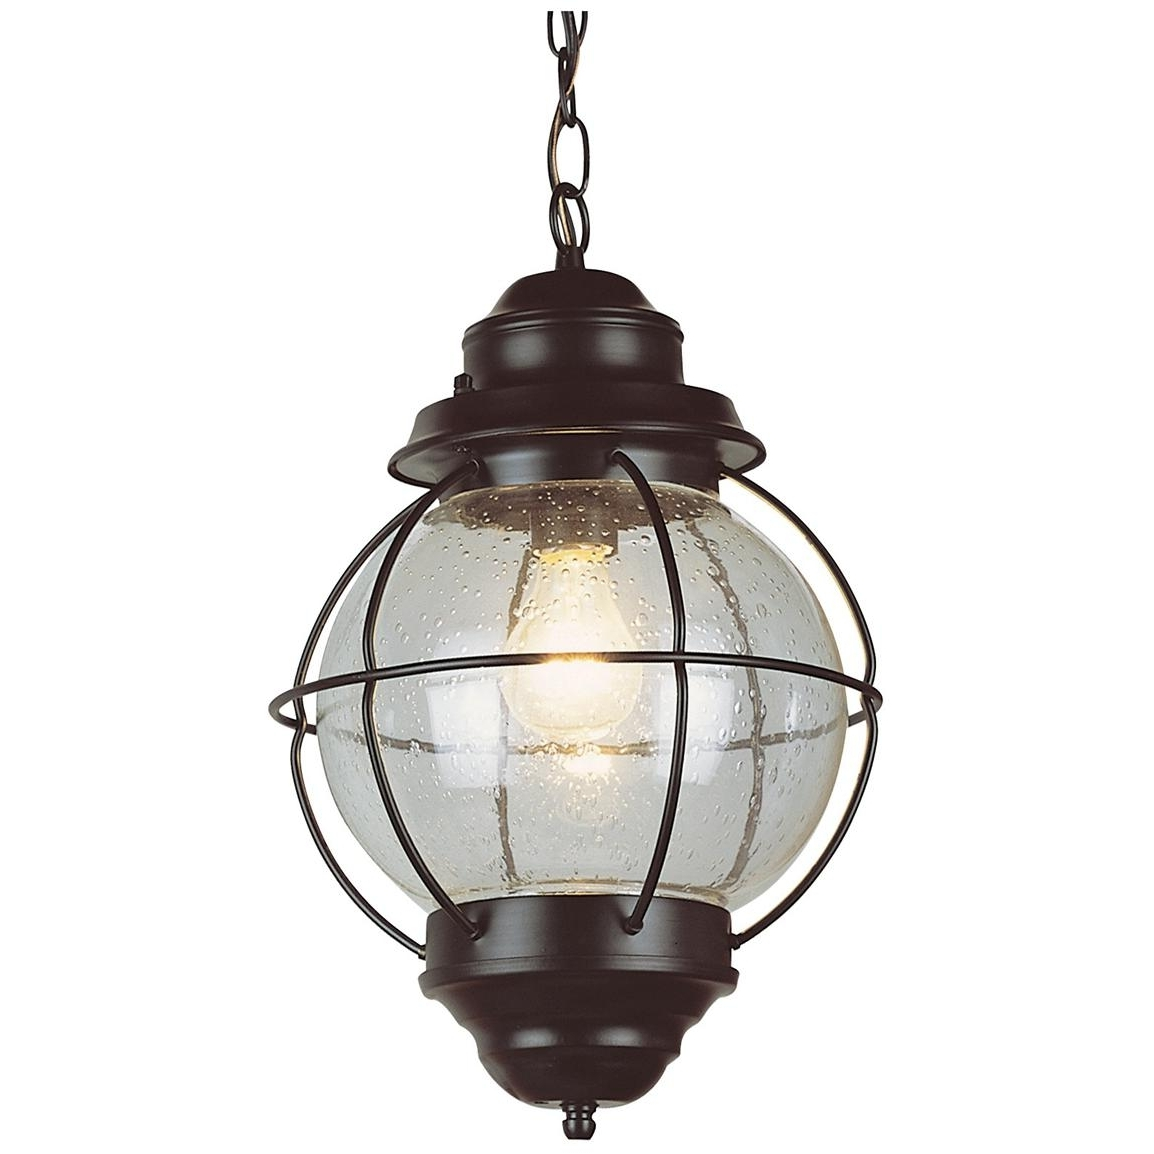 Outdoor Nautical Lanterns With Regard To 2019 Decorating Ideas: Cool Image Of Home Lighting Decoration Using (View 16 of 20)